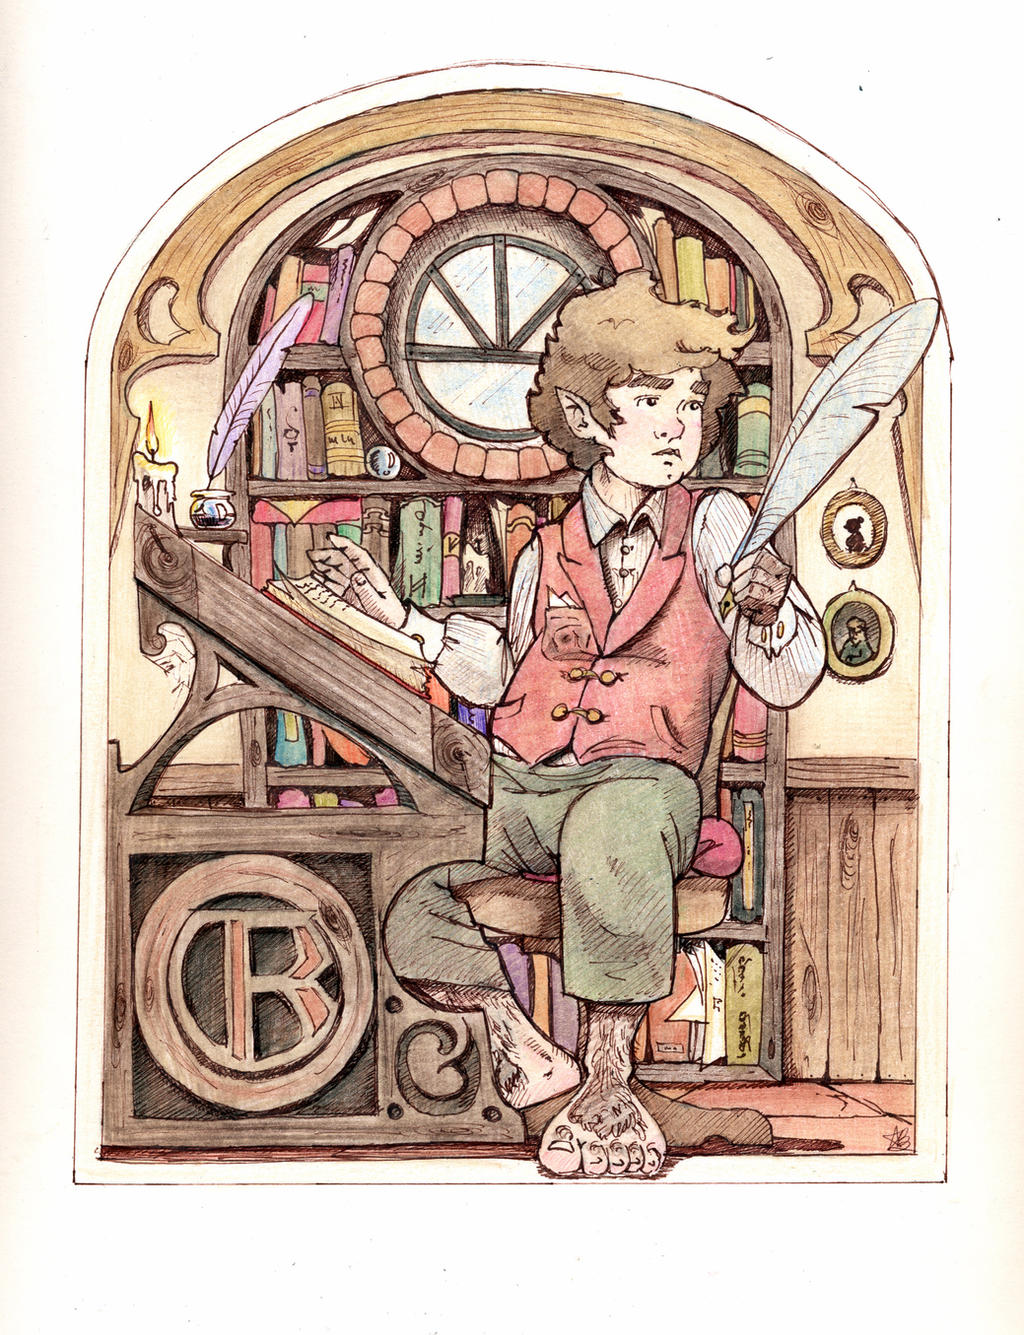 Collecting memories, Bilbo by aryundomiel